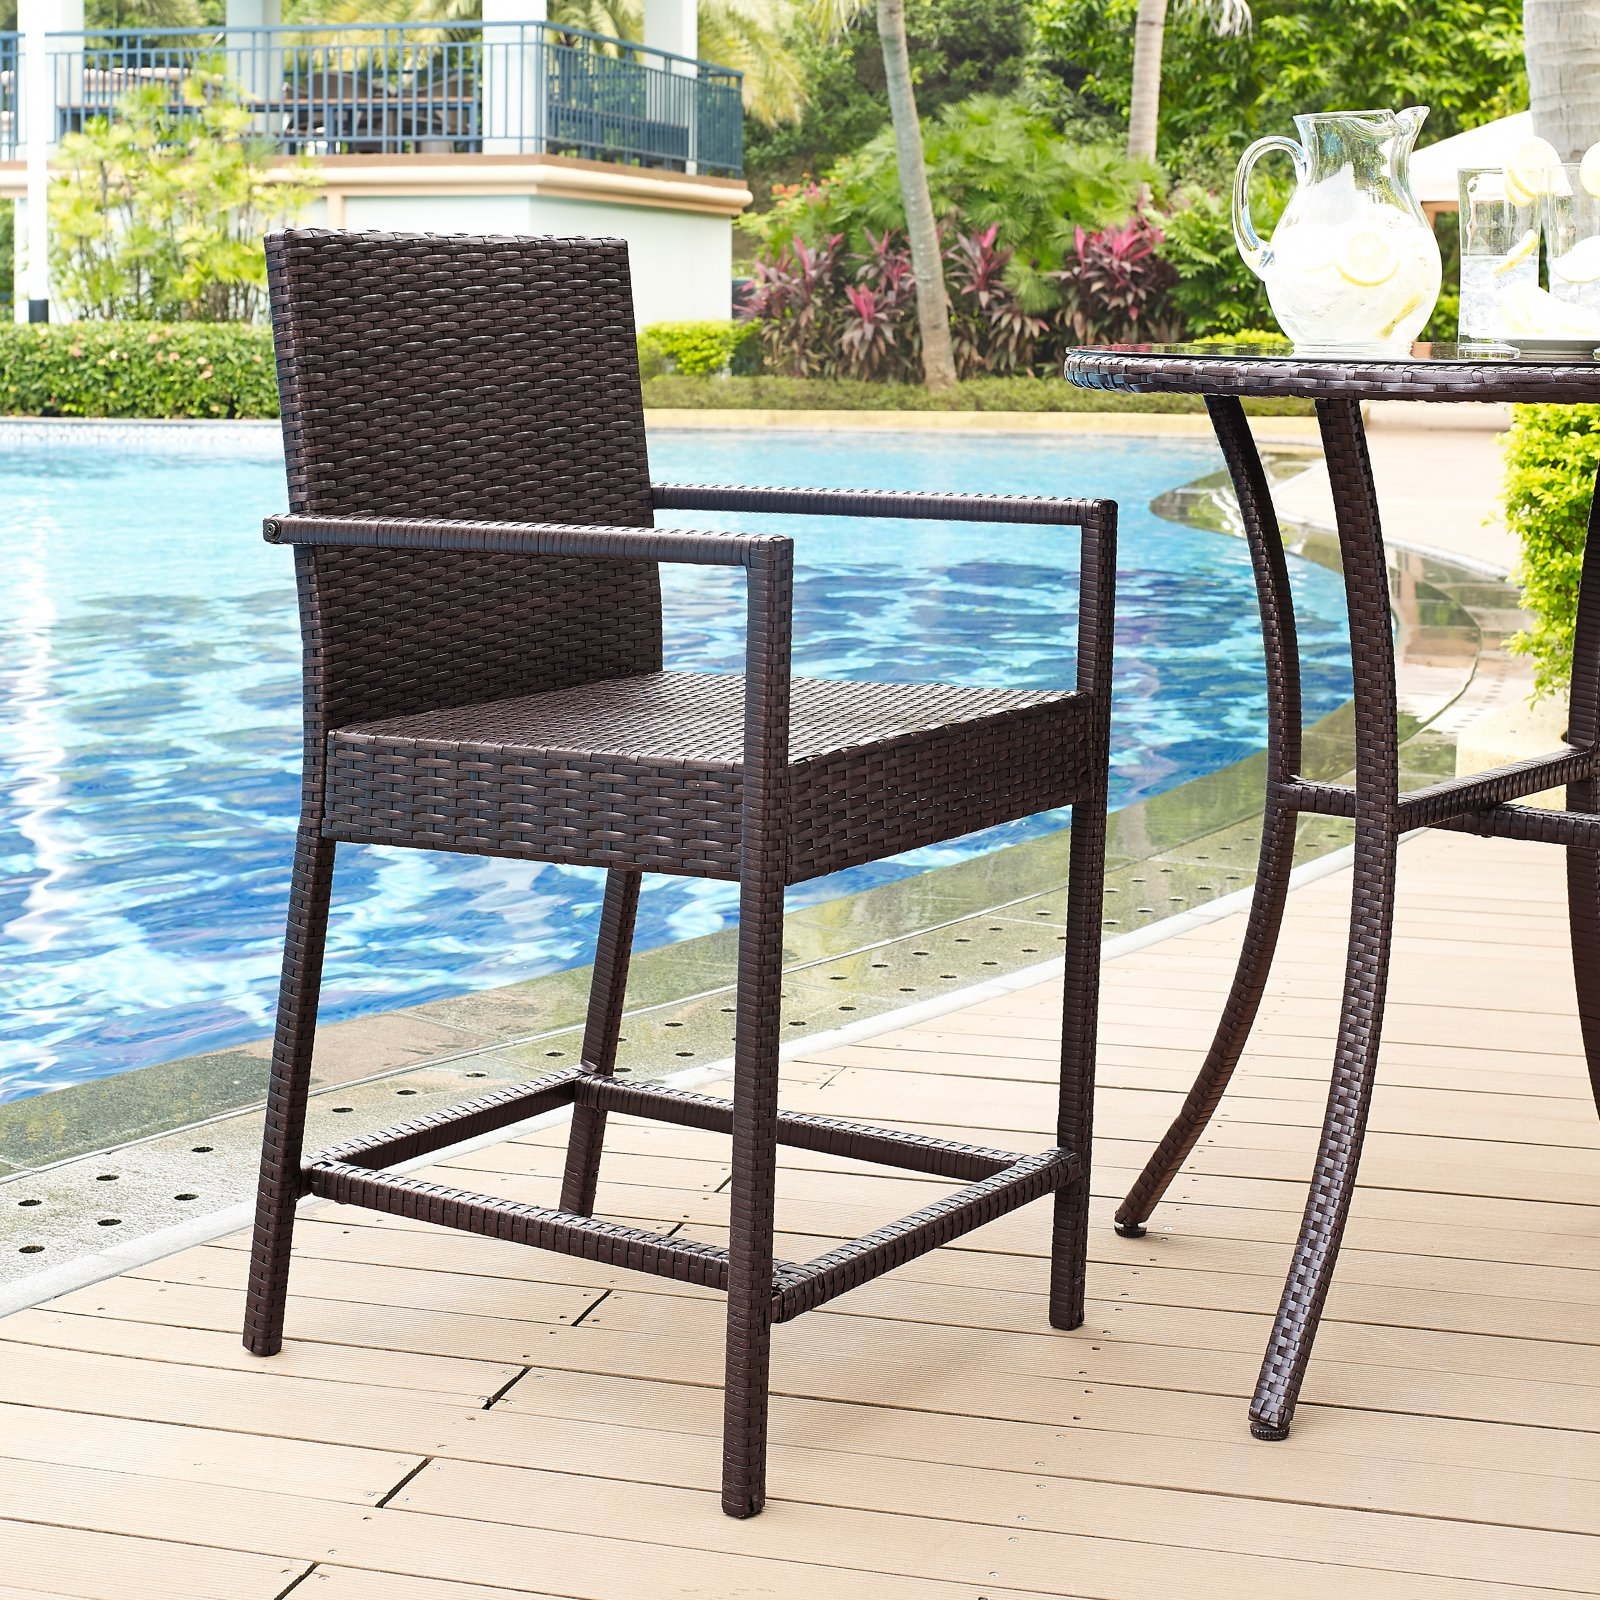 Crosley Palm Harbor Outdoor Wicker Bistro Stool, Set of 2